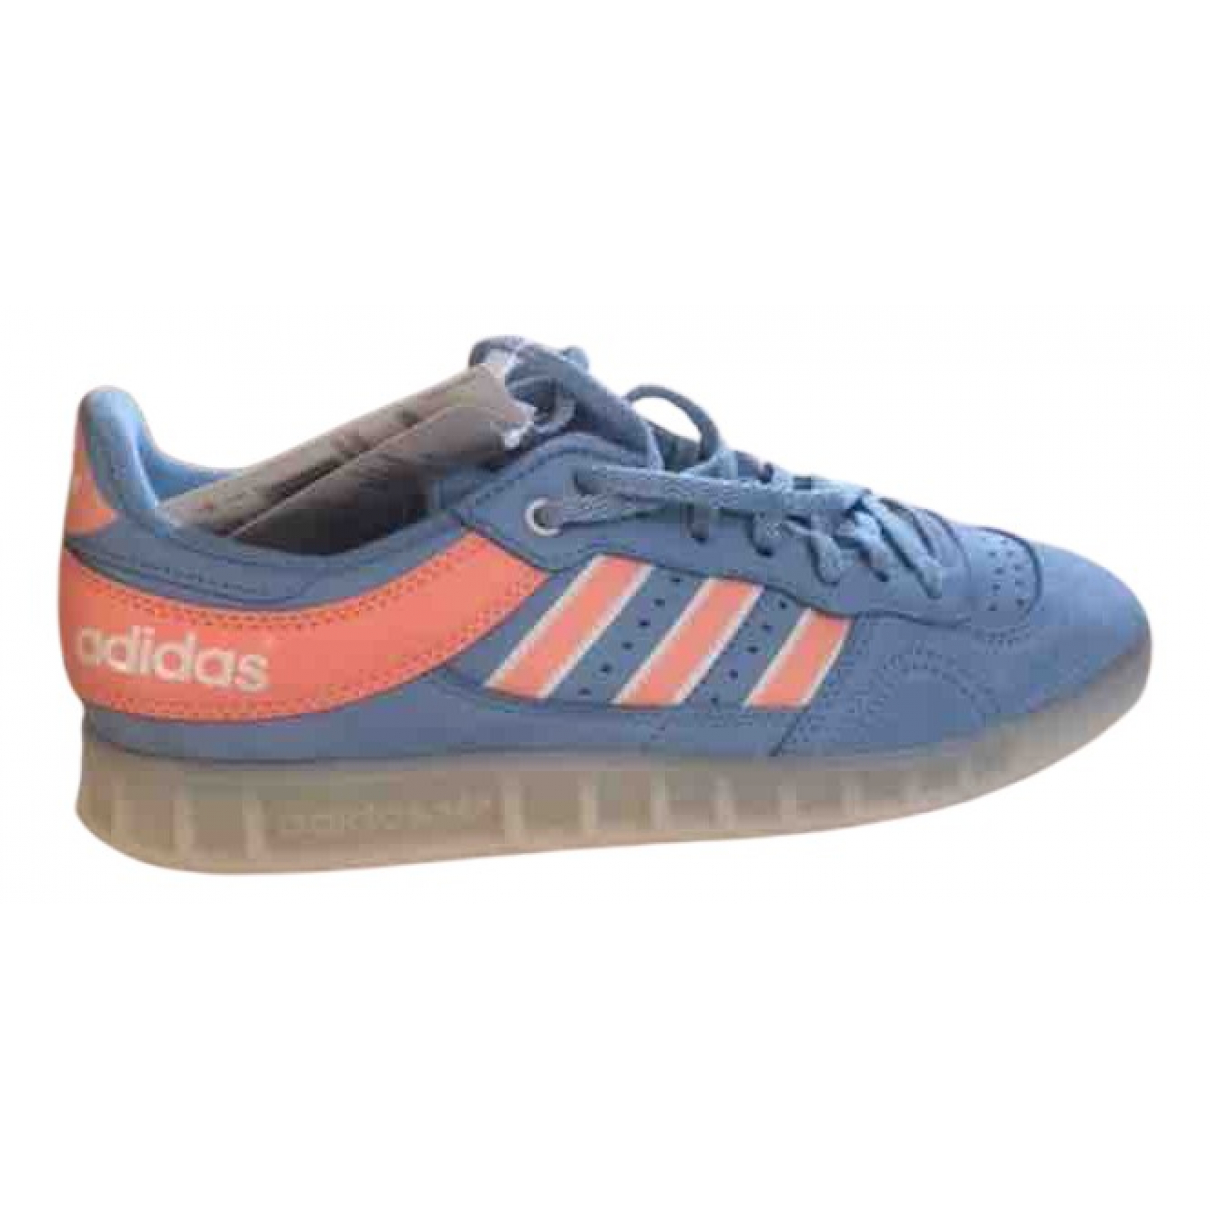 Adidas N Blue Leather Trainers for Men 42 EU